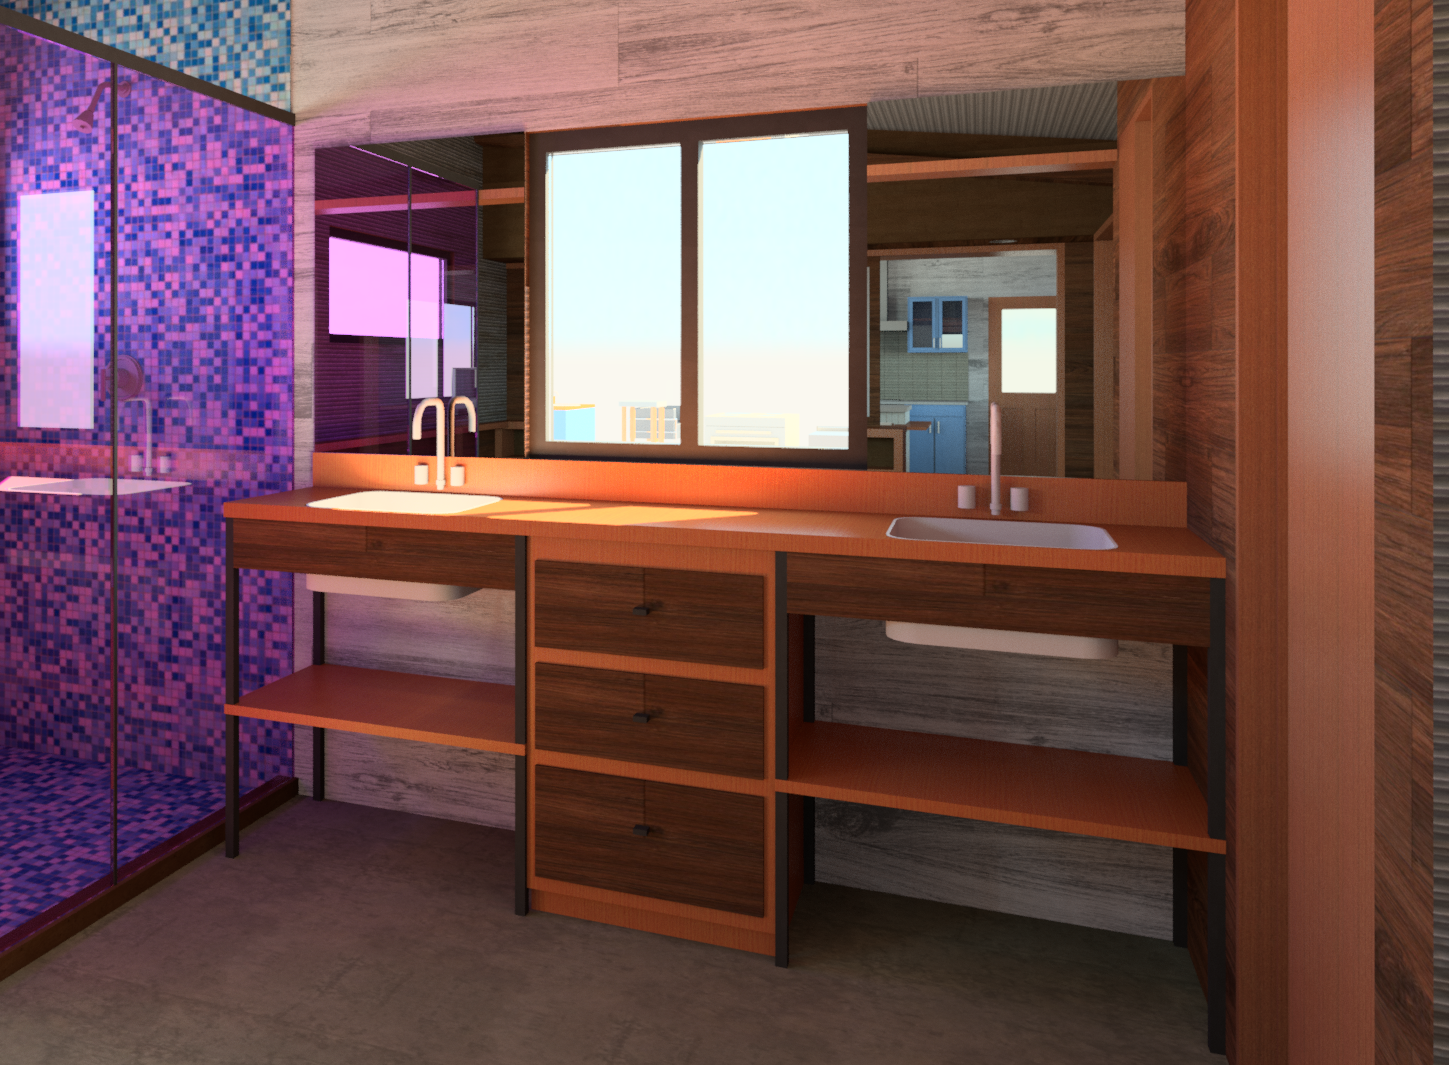 Michelle_Showhome3.rvt_2016-Jul-19_01-19-51PM-000_Bathroom.png